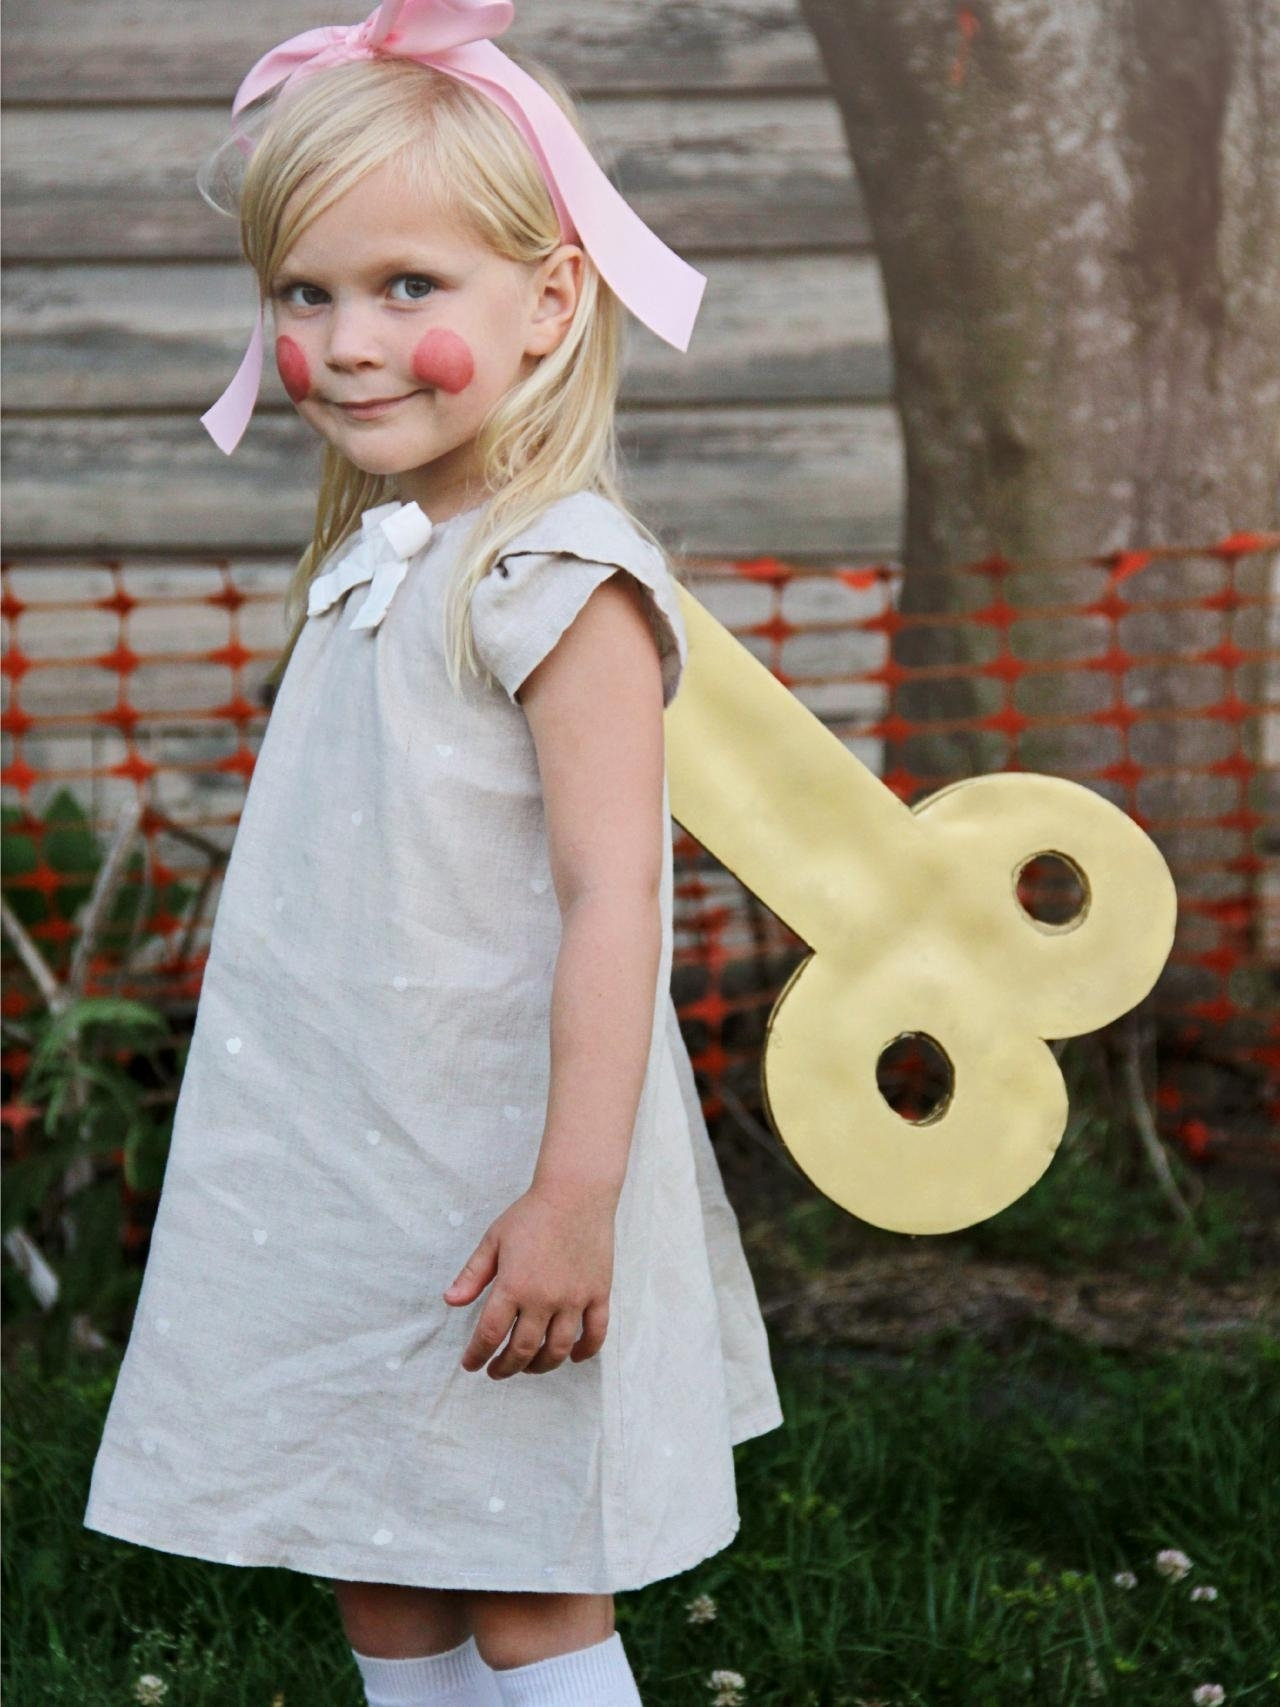 10 Fantastic 2 Year Old Halloween Costume Ideas %name 2020